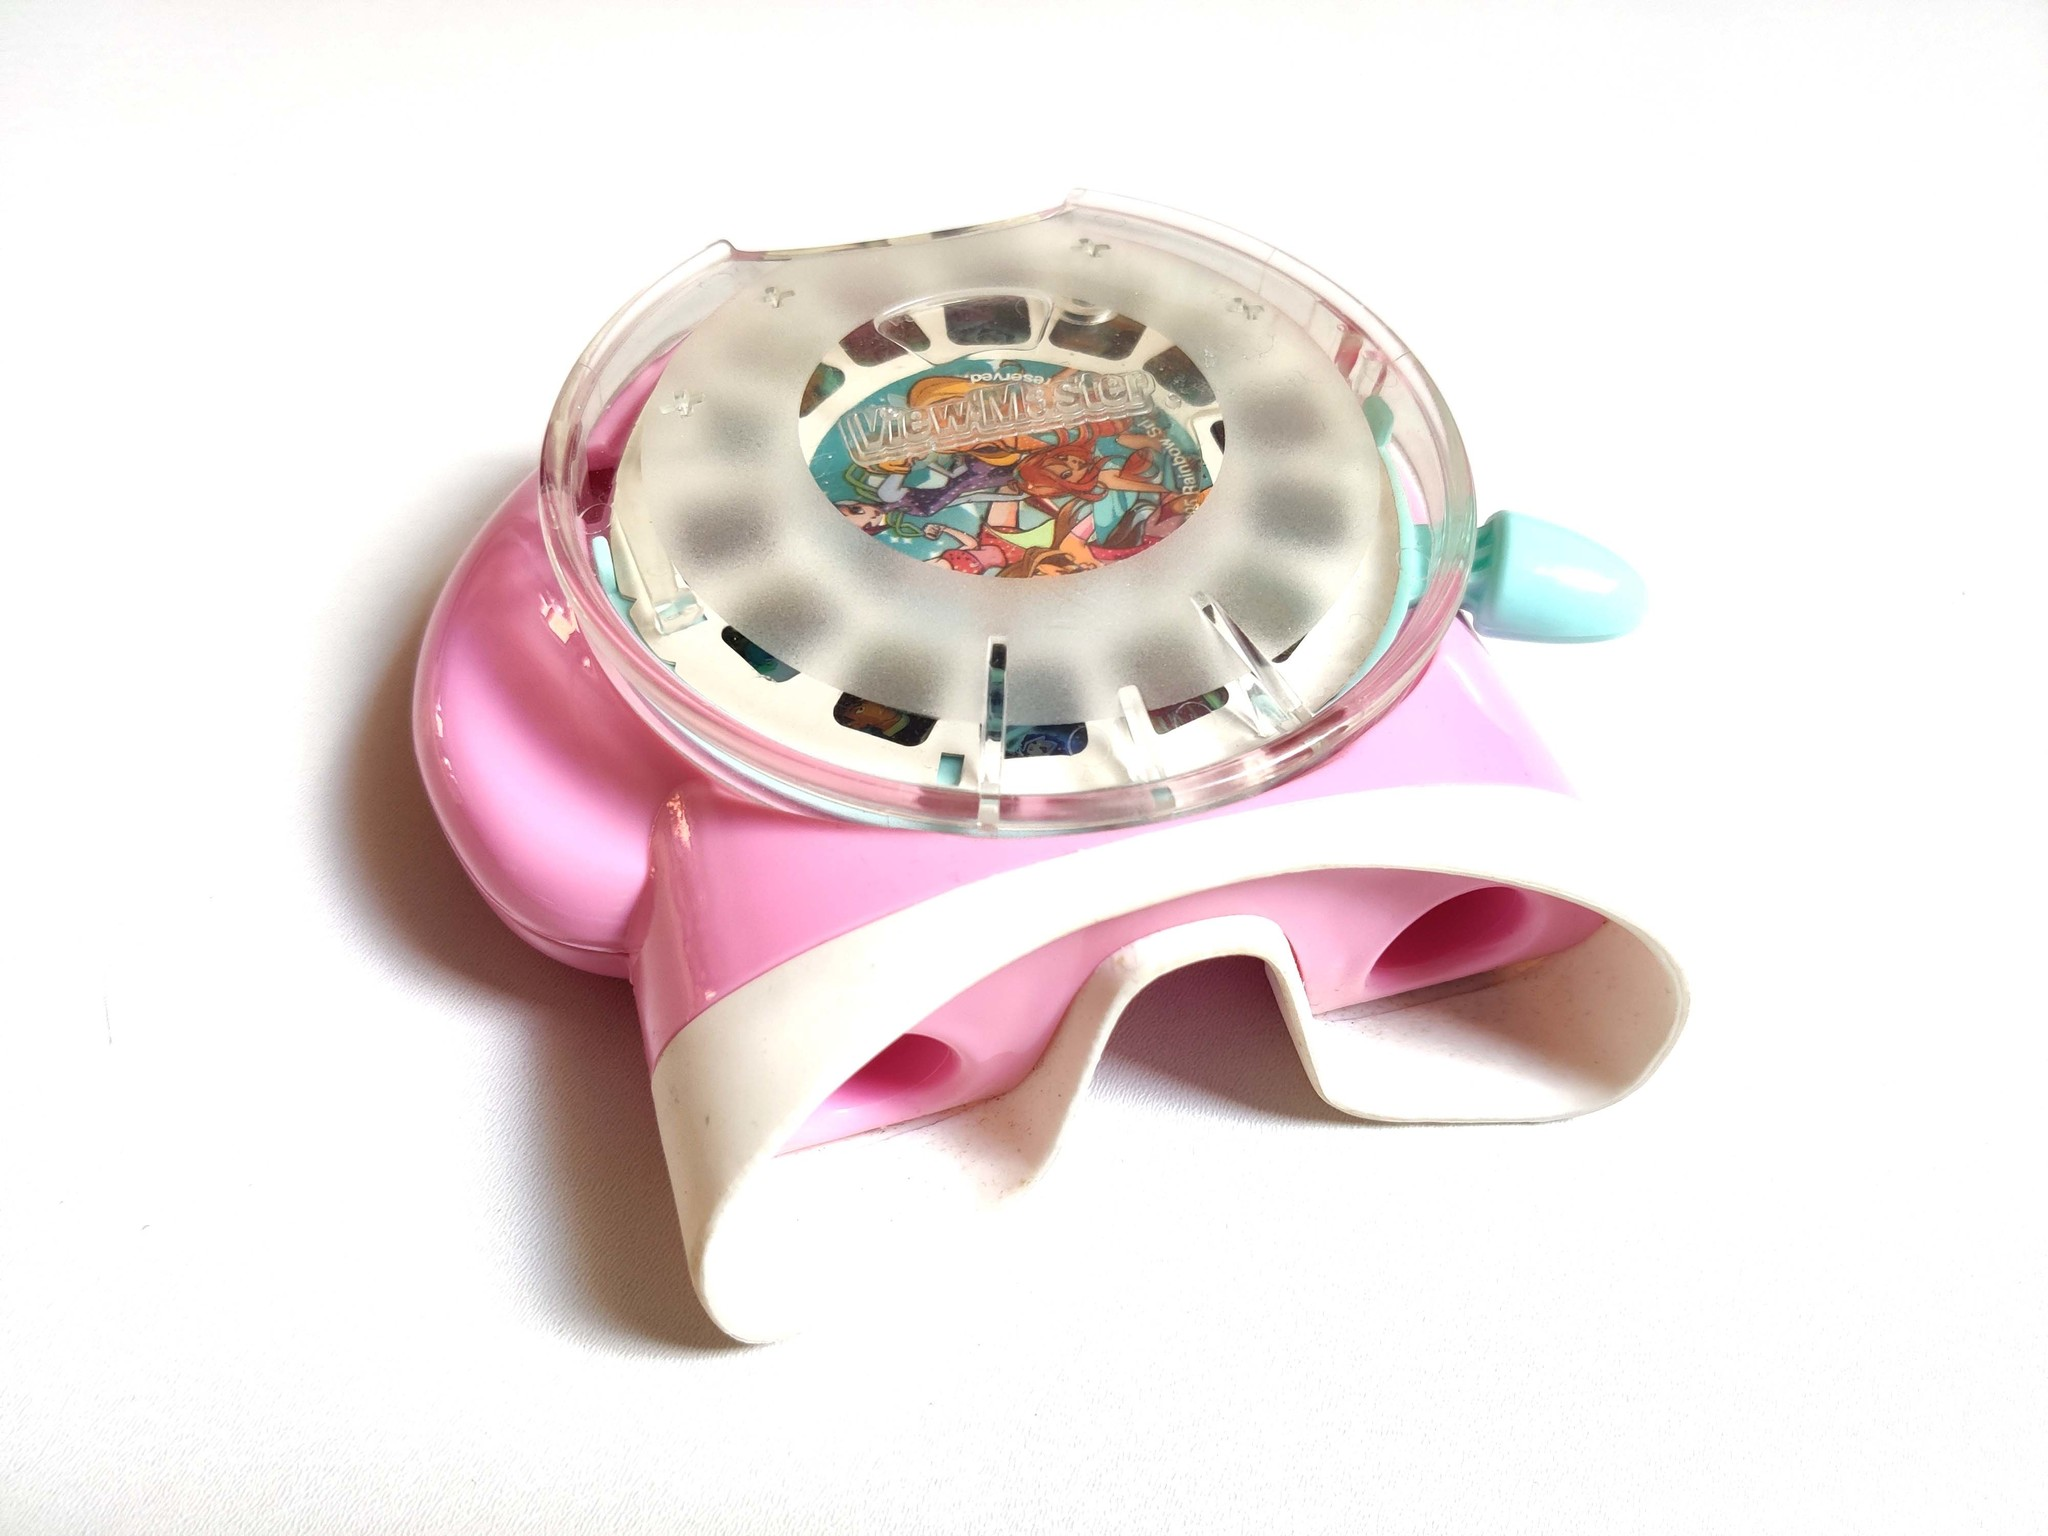 View master + schijfje-1